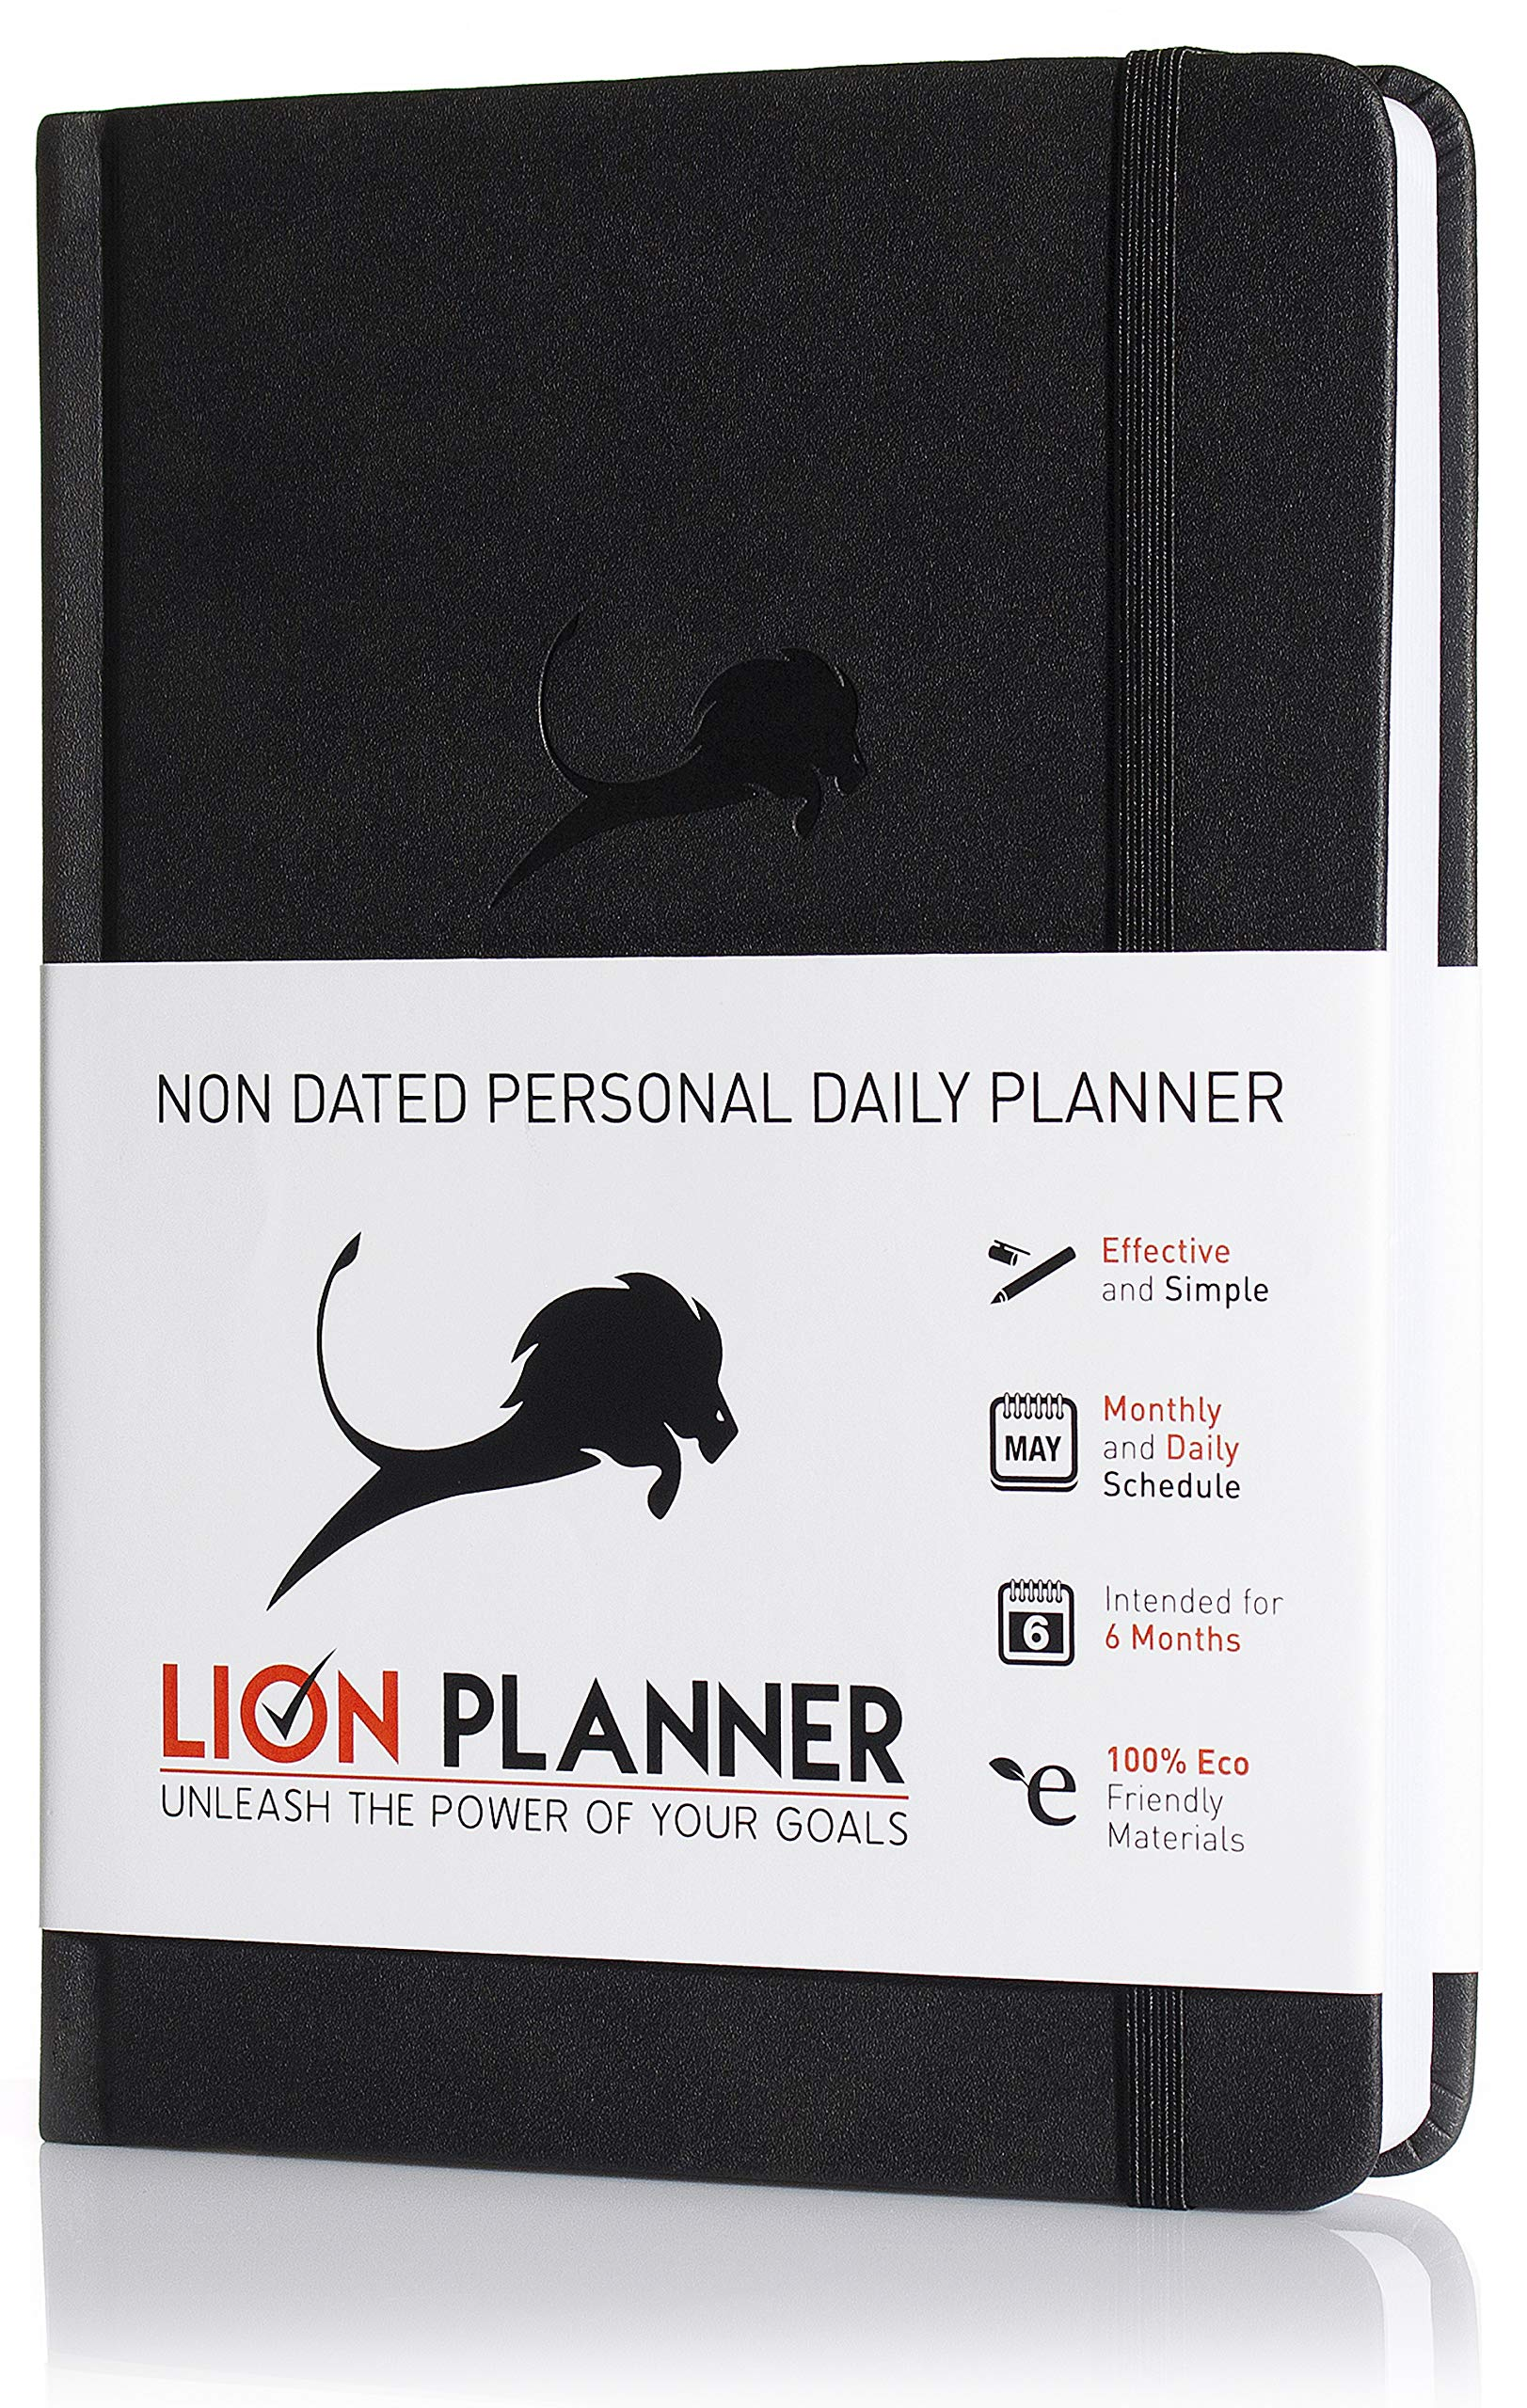 Best Daily Planner for Productivity & Time Management - Monthly Calendar, Weekly and Daily to DO List - 24 Hour Schedule & Appointment Journal - 6 Months - Undated - Hardcover - 12 Months Guarantee